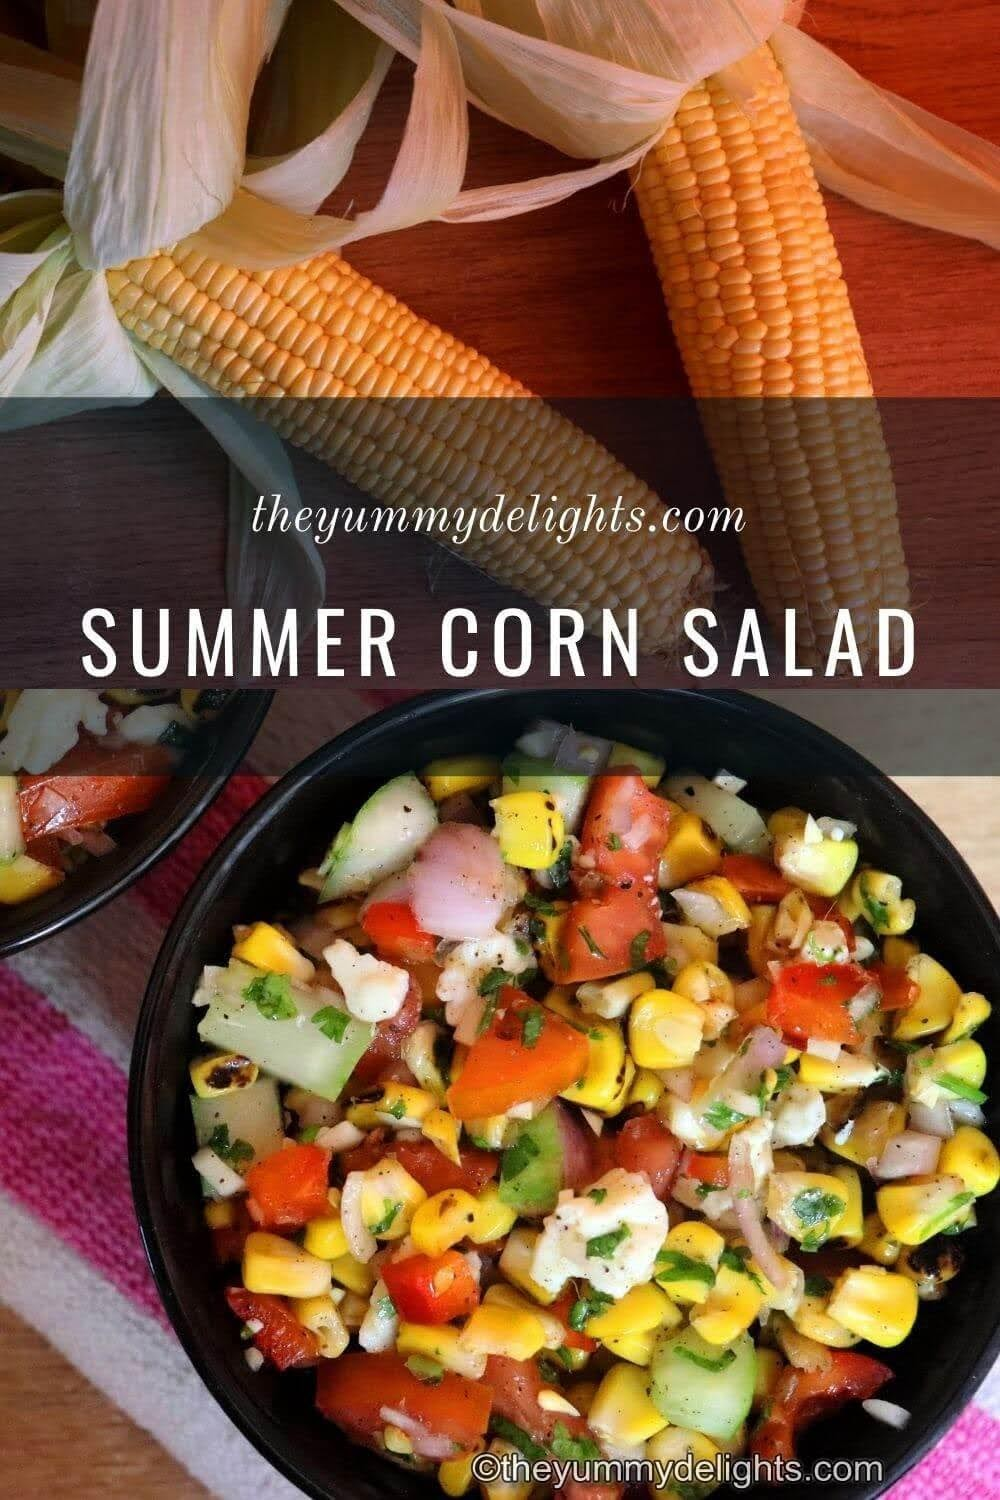 close-up of grilled corn salad in a black bowl. Two fresh corns are placed near the salad bowl.